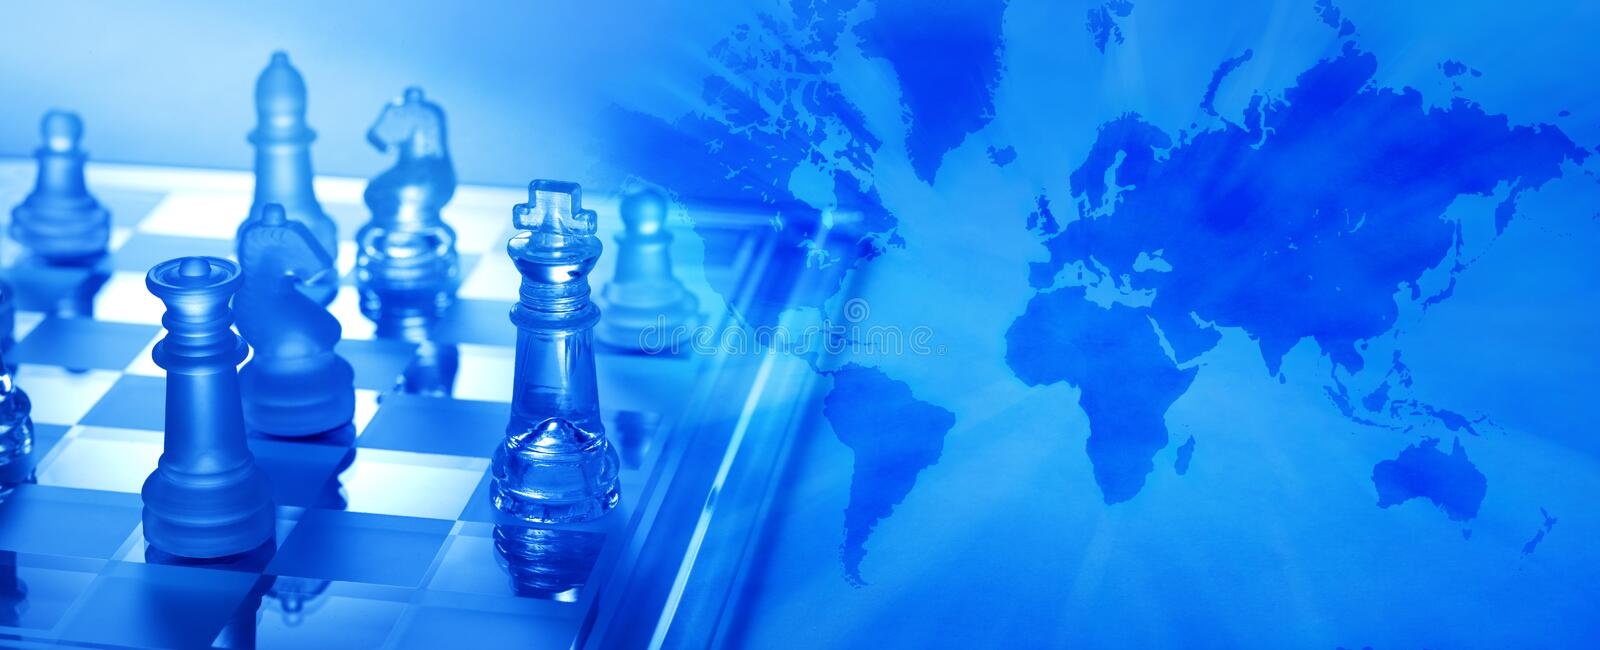 Global Business Strategy Chess Banner. An image combining chess and a world map trying to convey global business strategy